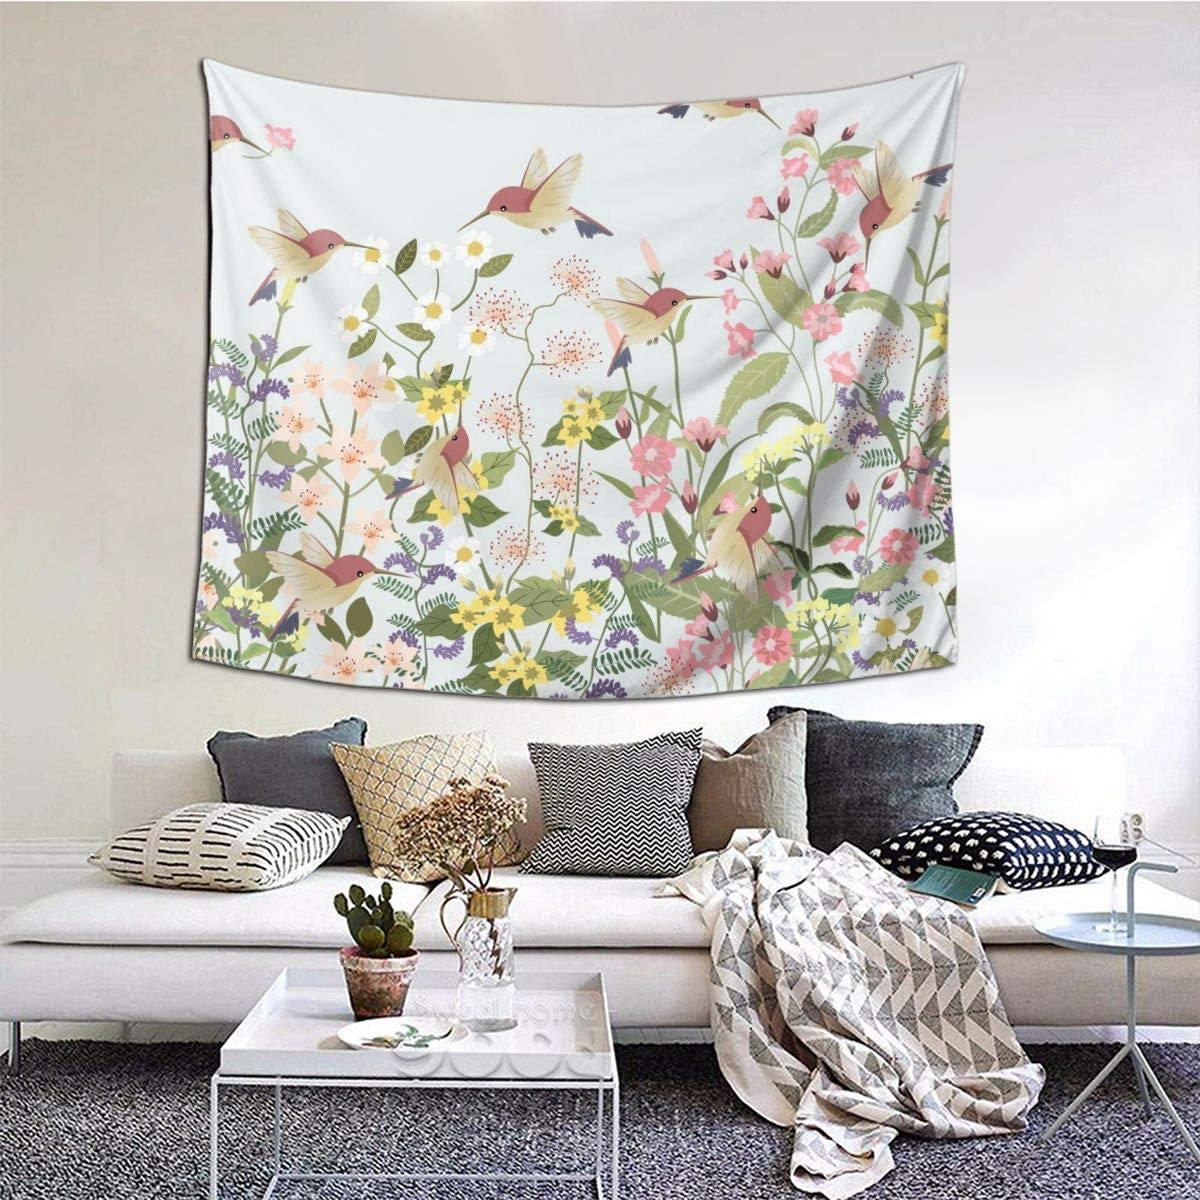 N/W Sweet Floral Flower in Garden Tapestry Beautiful Hummingbird Tapestry Wall Hanging for Home Decor Wall Hanging Living Room Bedroom Dorm(60 X 51 Inches)